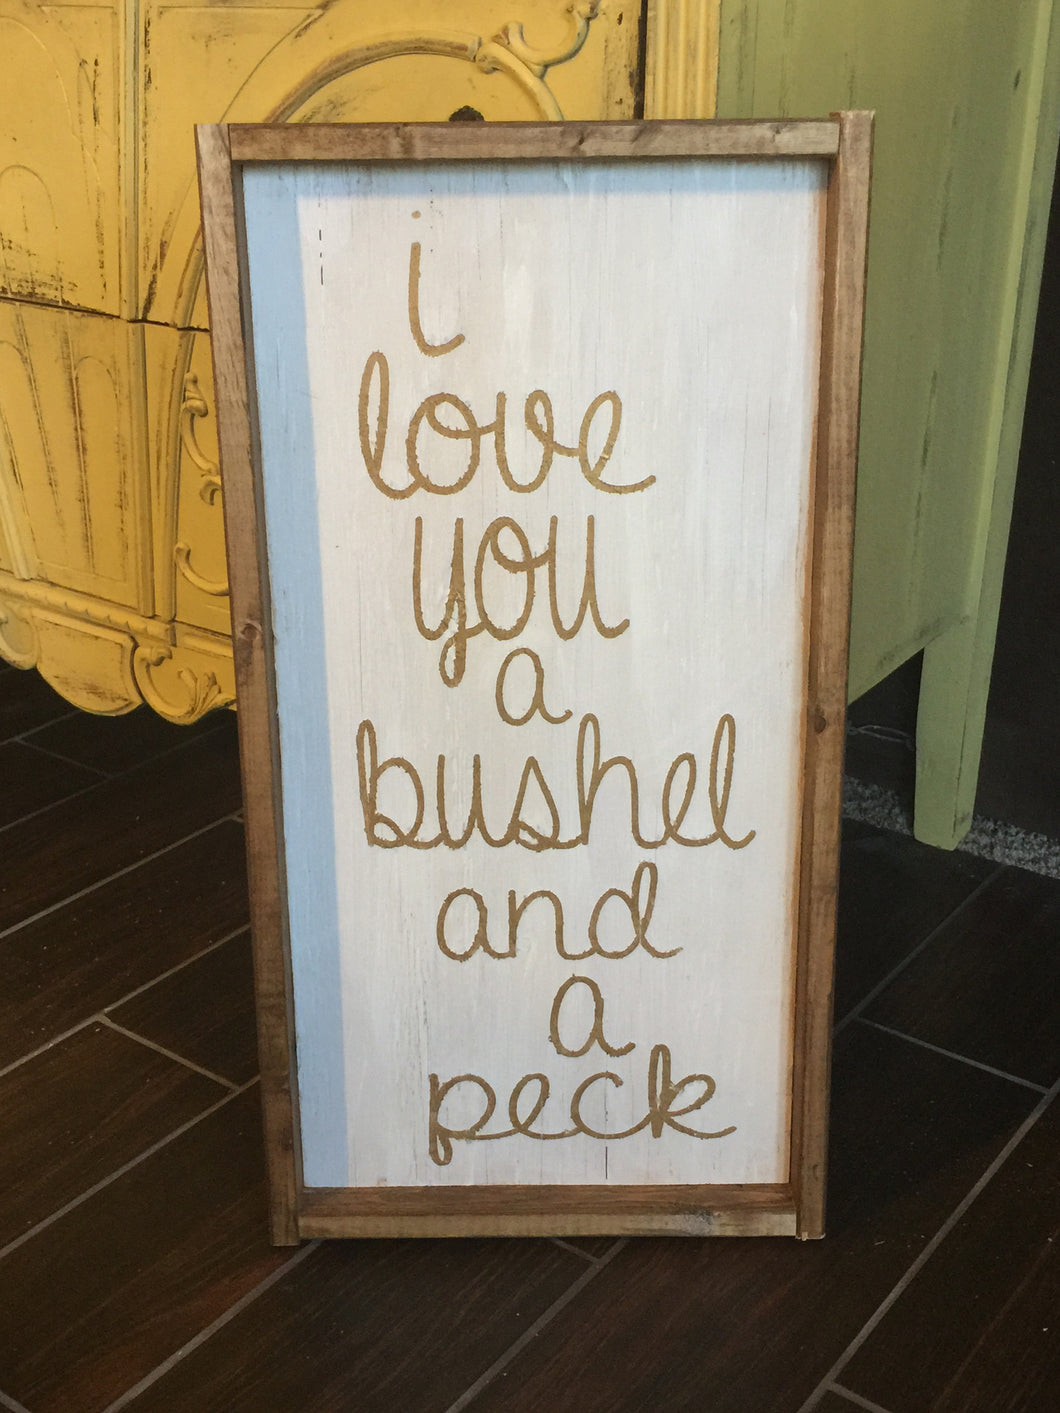 I Love You A Bushel And A Peck - Vertical